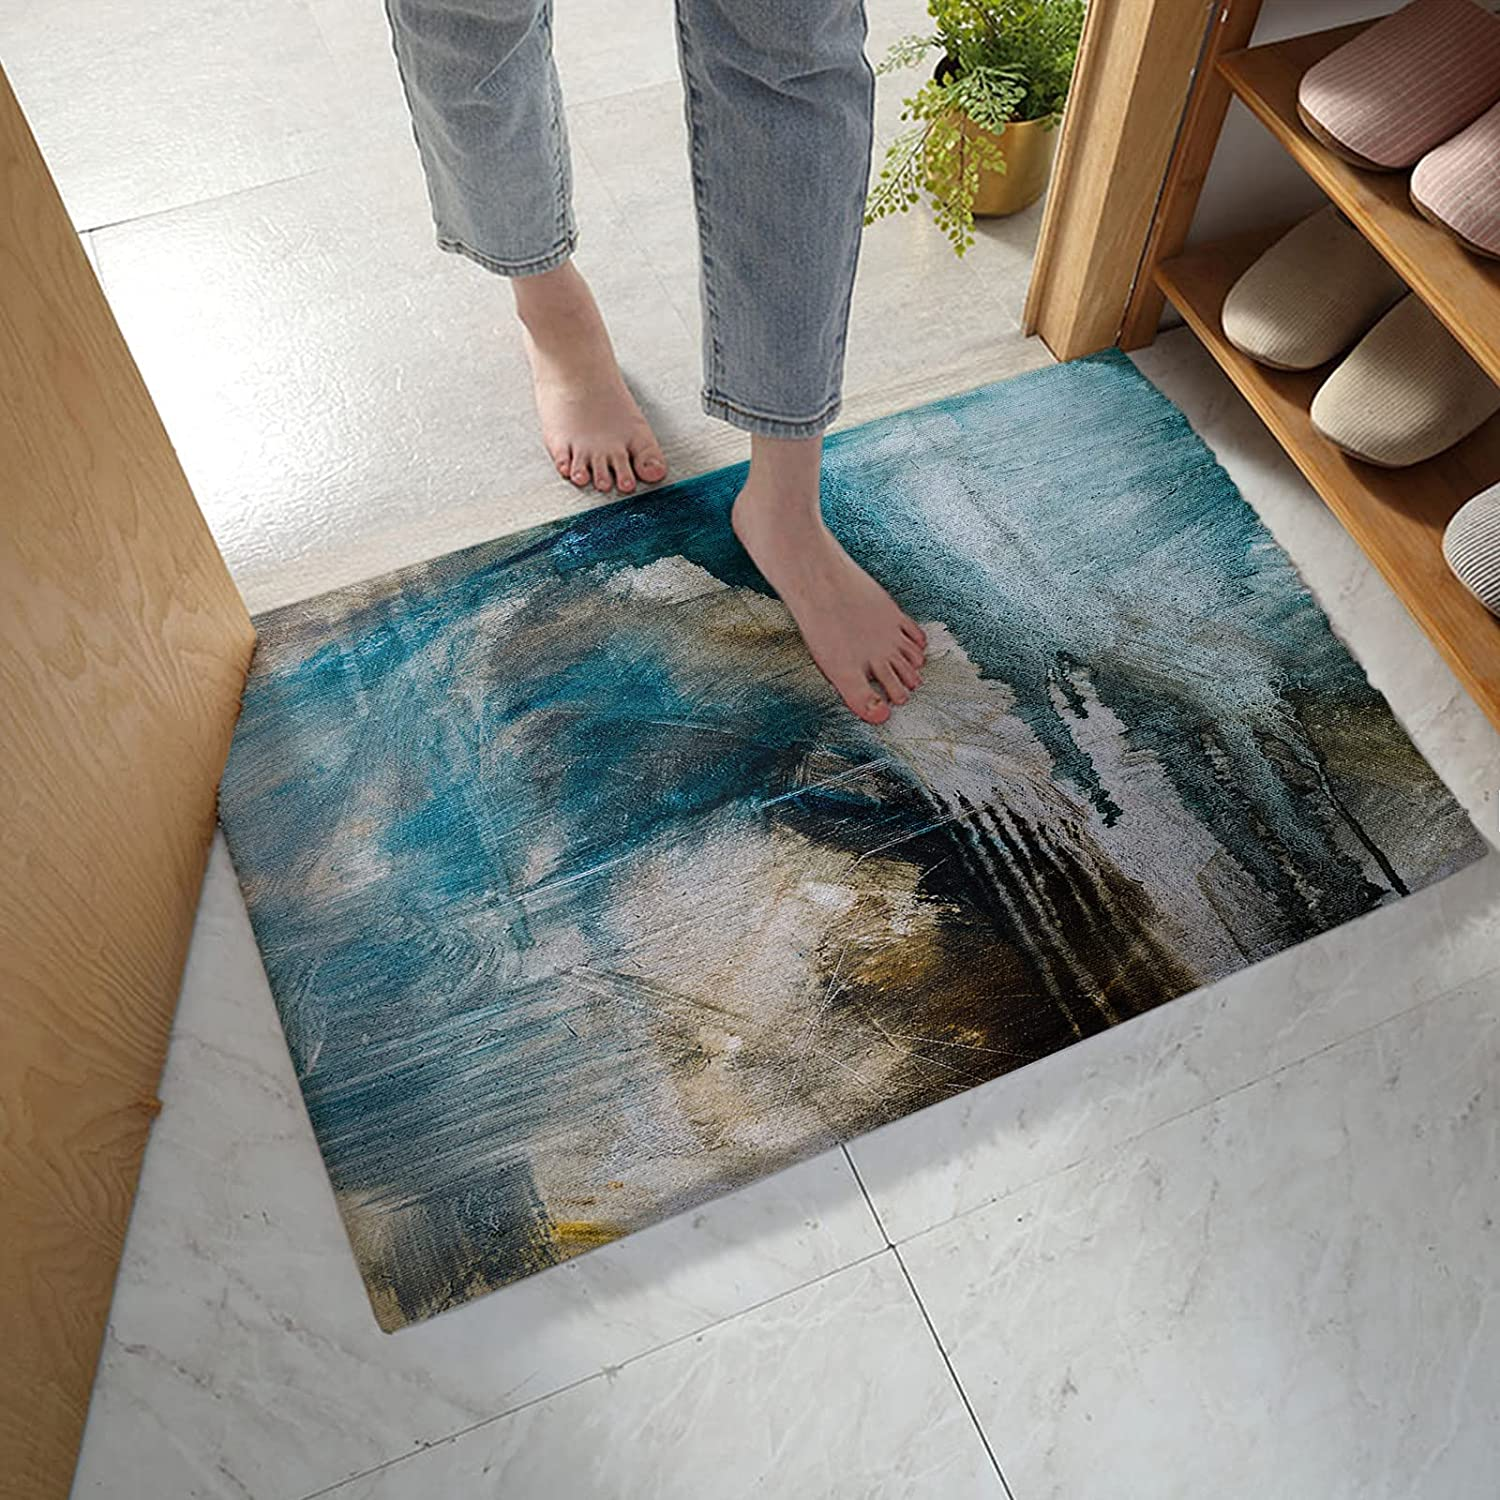 Free shipping on posting reviews MuswannaA Bathroom Rug Bath Mat Color Art Text Abstract trust Painting